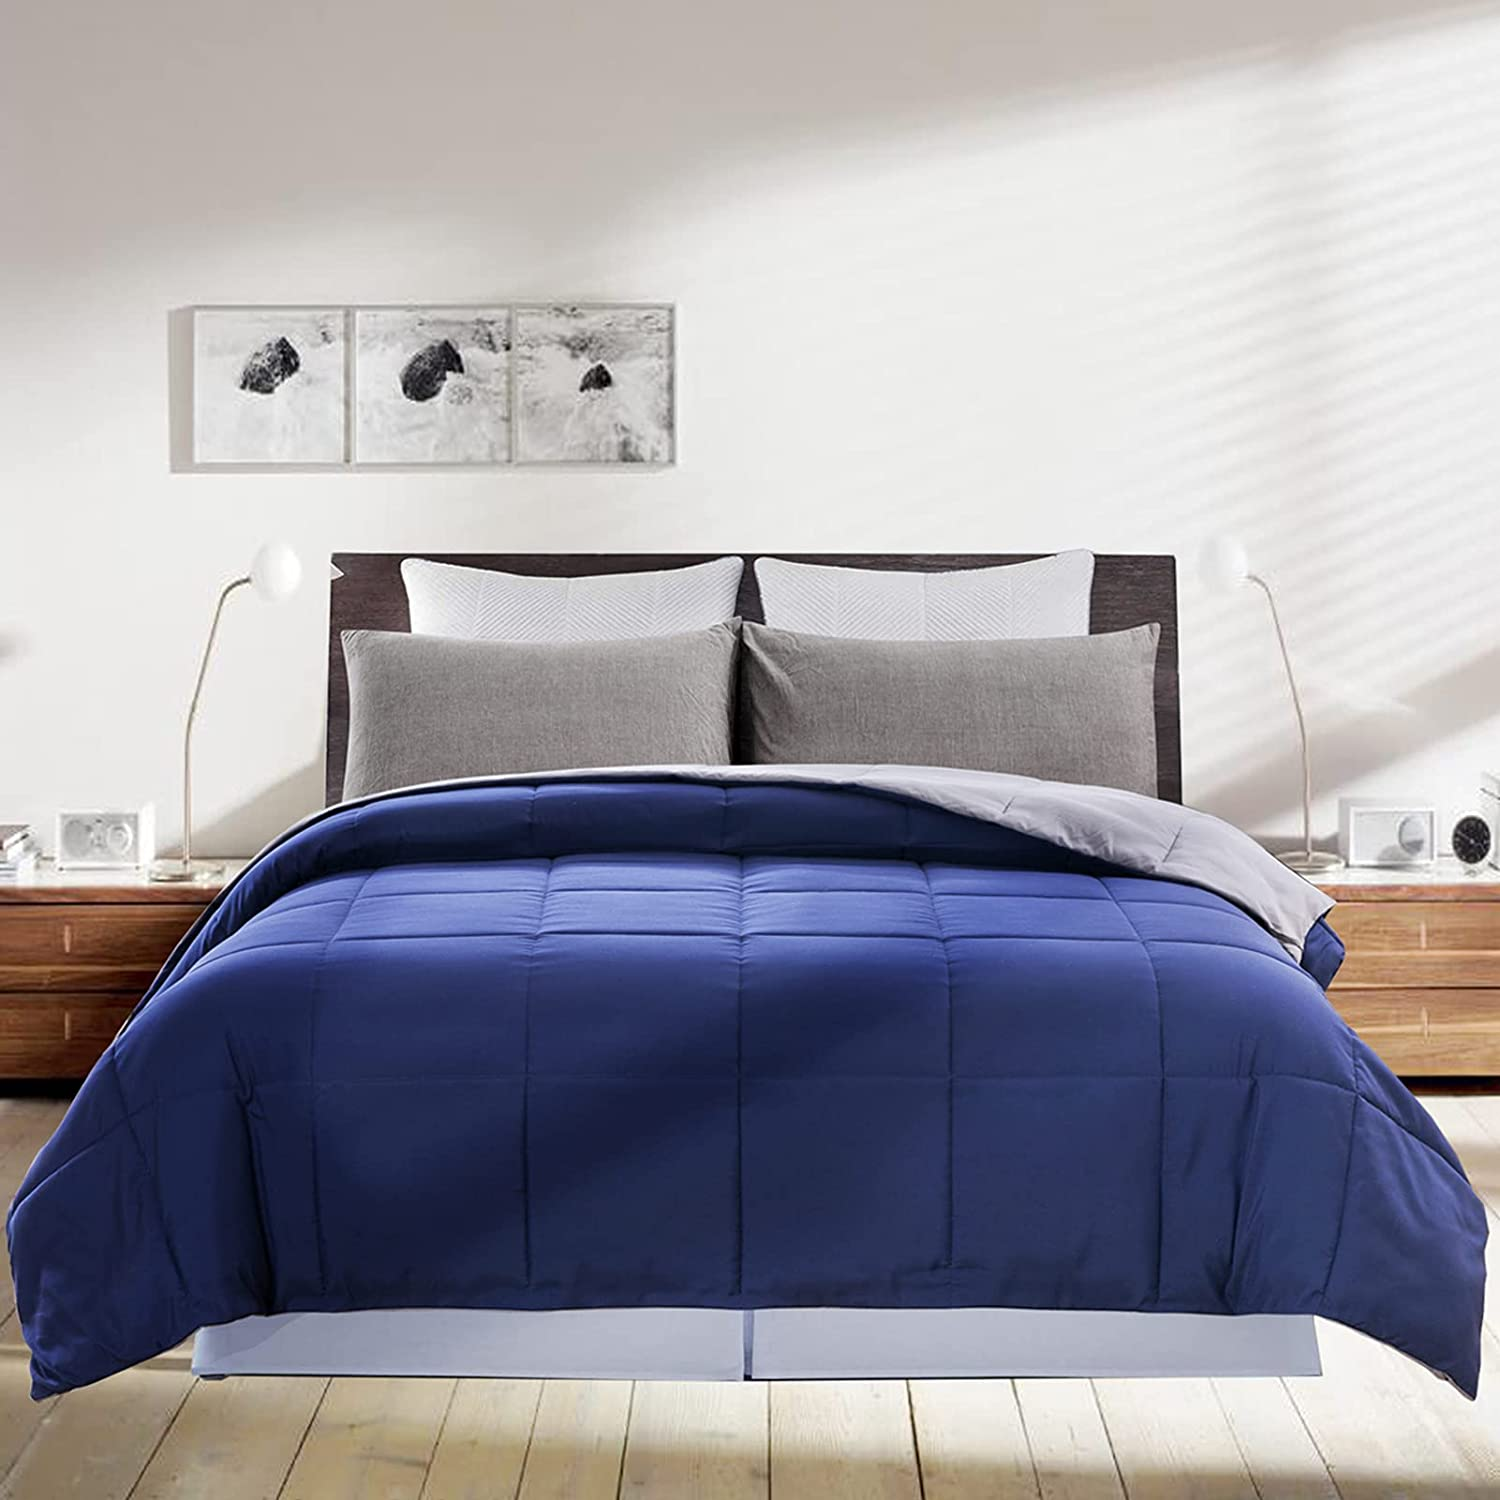 Purchase DOWNCOOL OFFicial shop Reversible Down Alternative Blanket Seaso Comforter-All